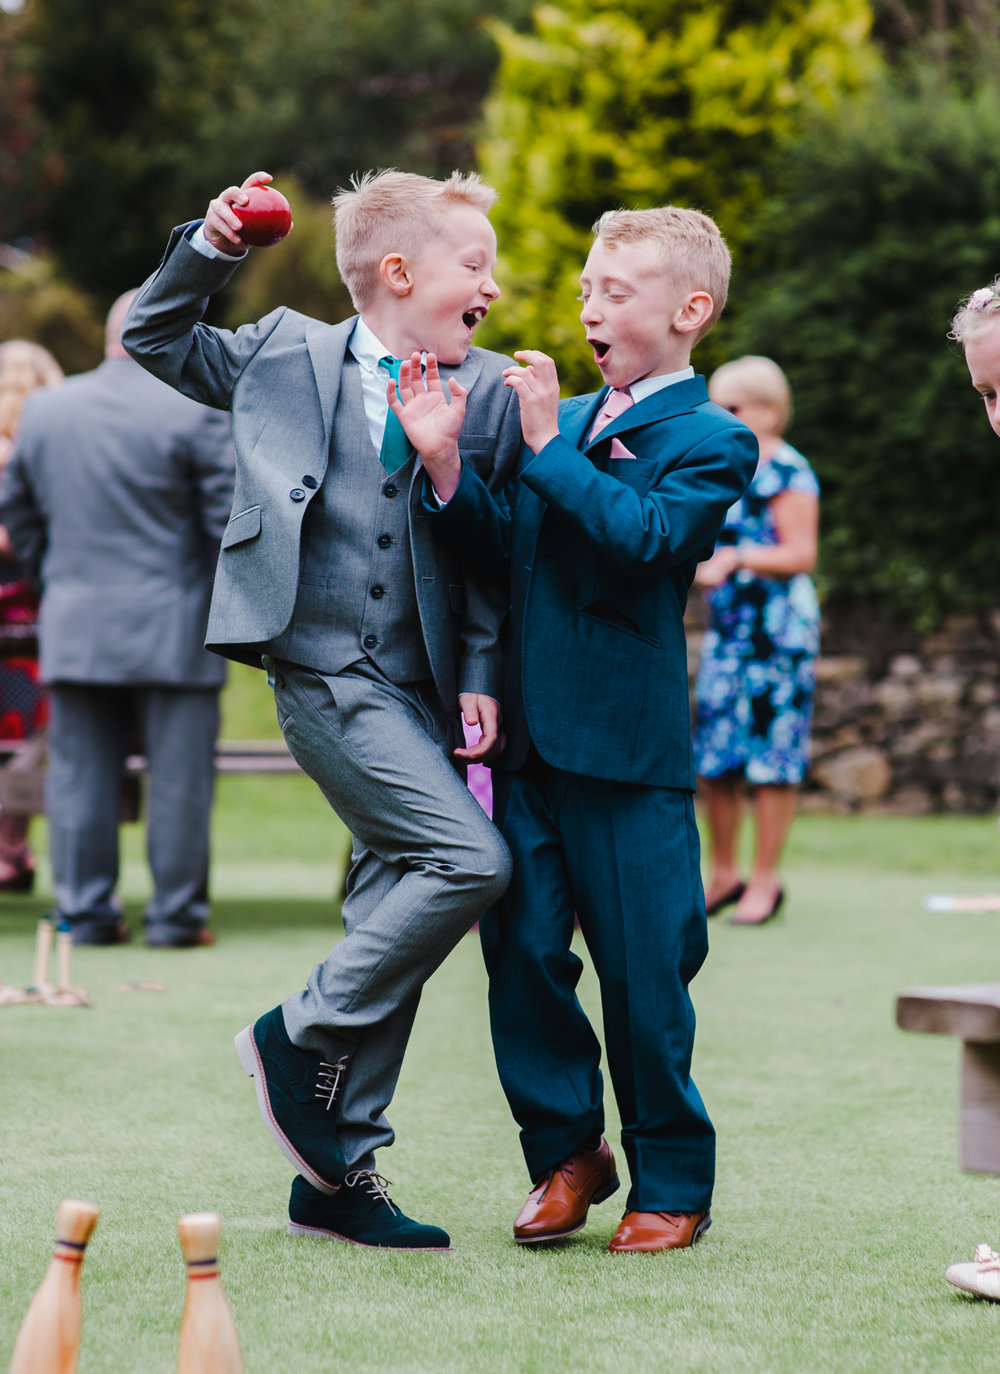 The little ones having a game of bowls- Handcraft wedding, lancashire